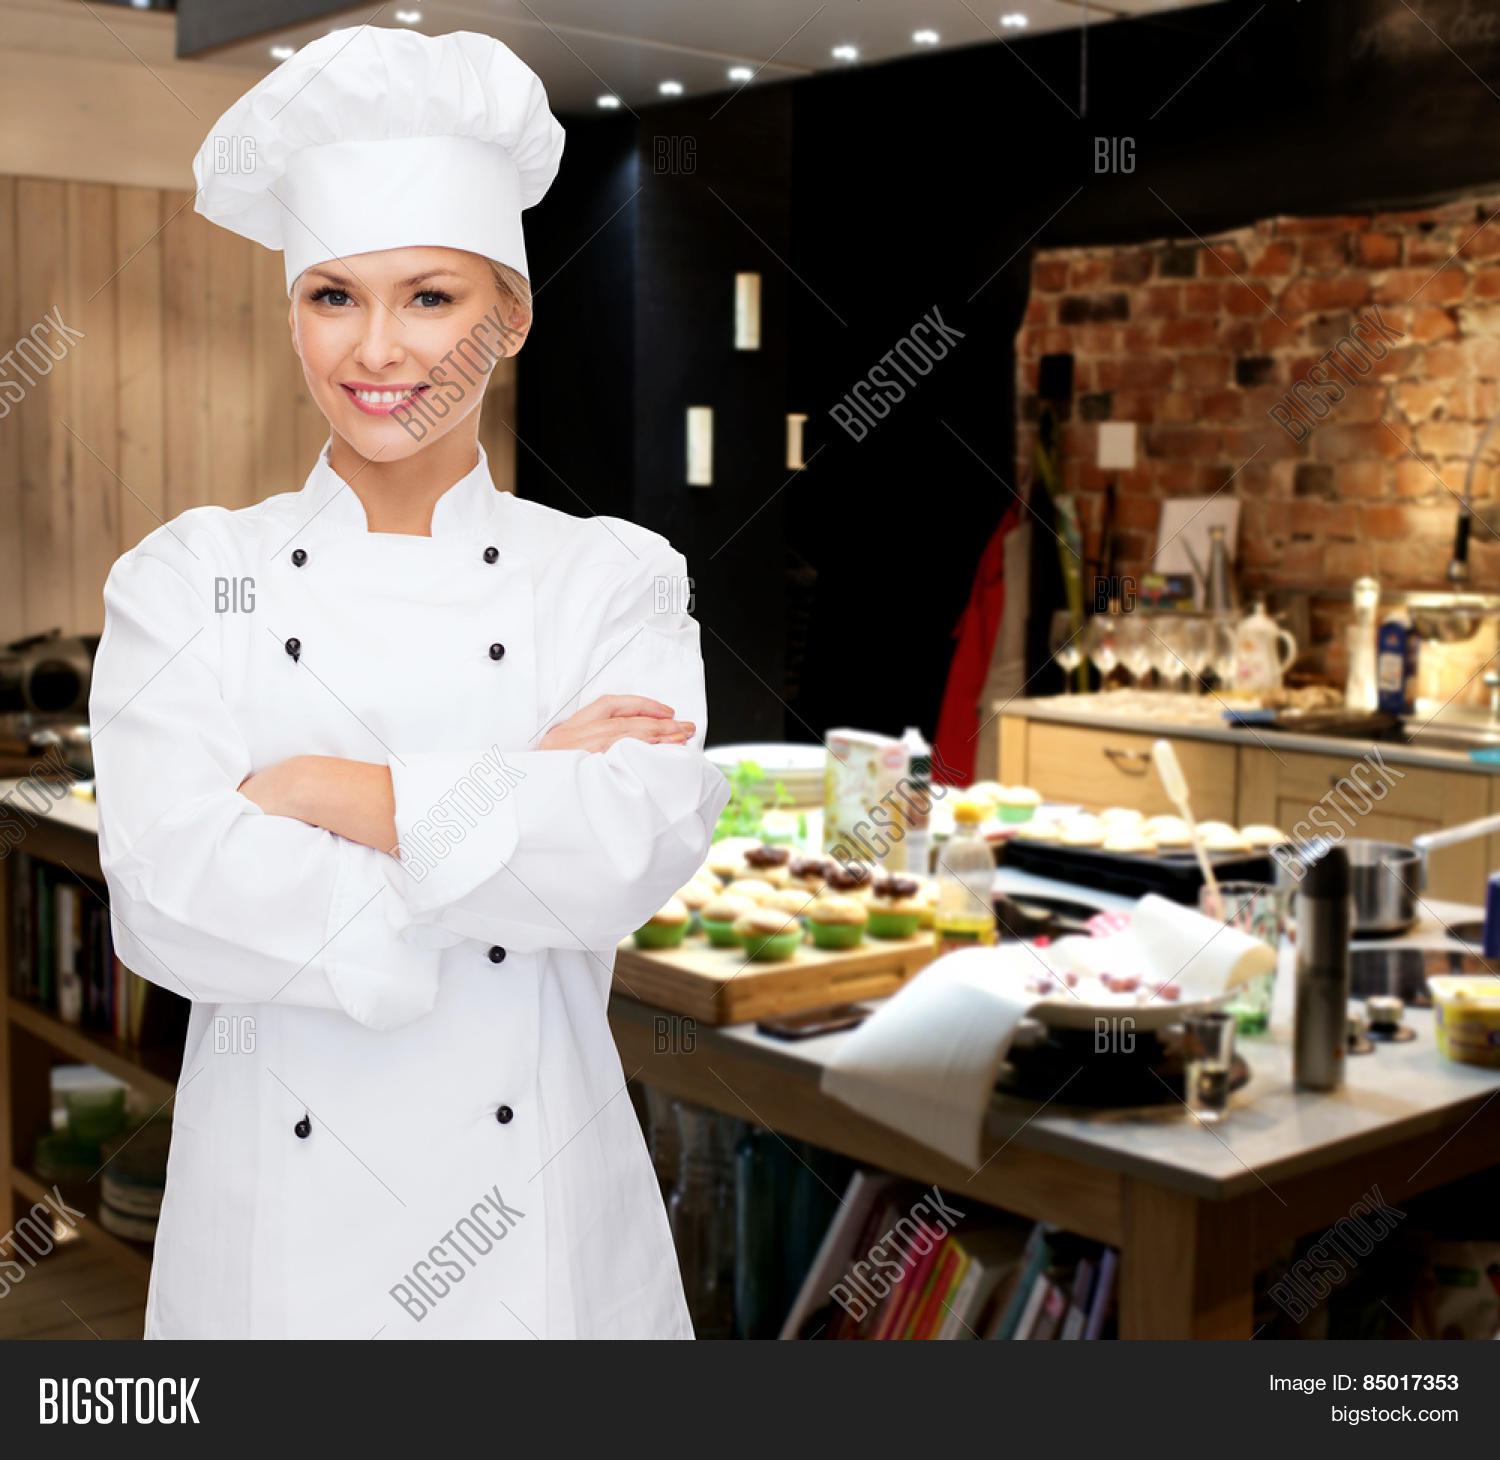 Cooking, Bakery, People Food Image & Photo